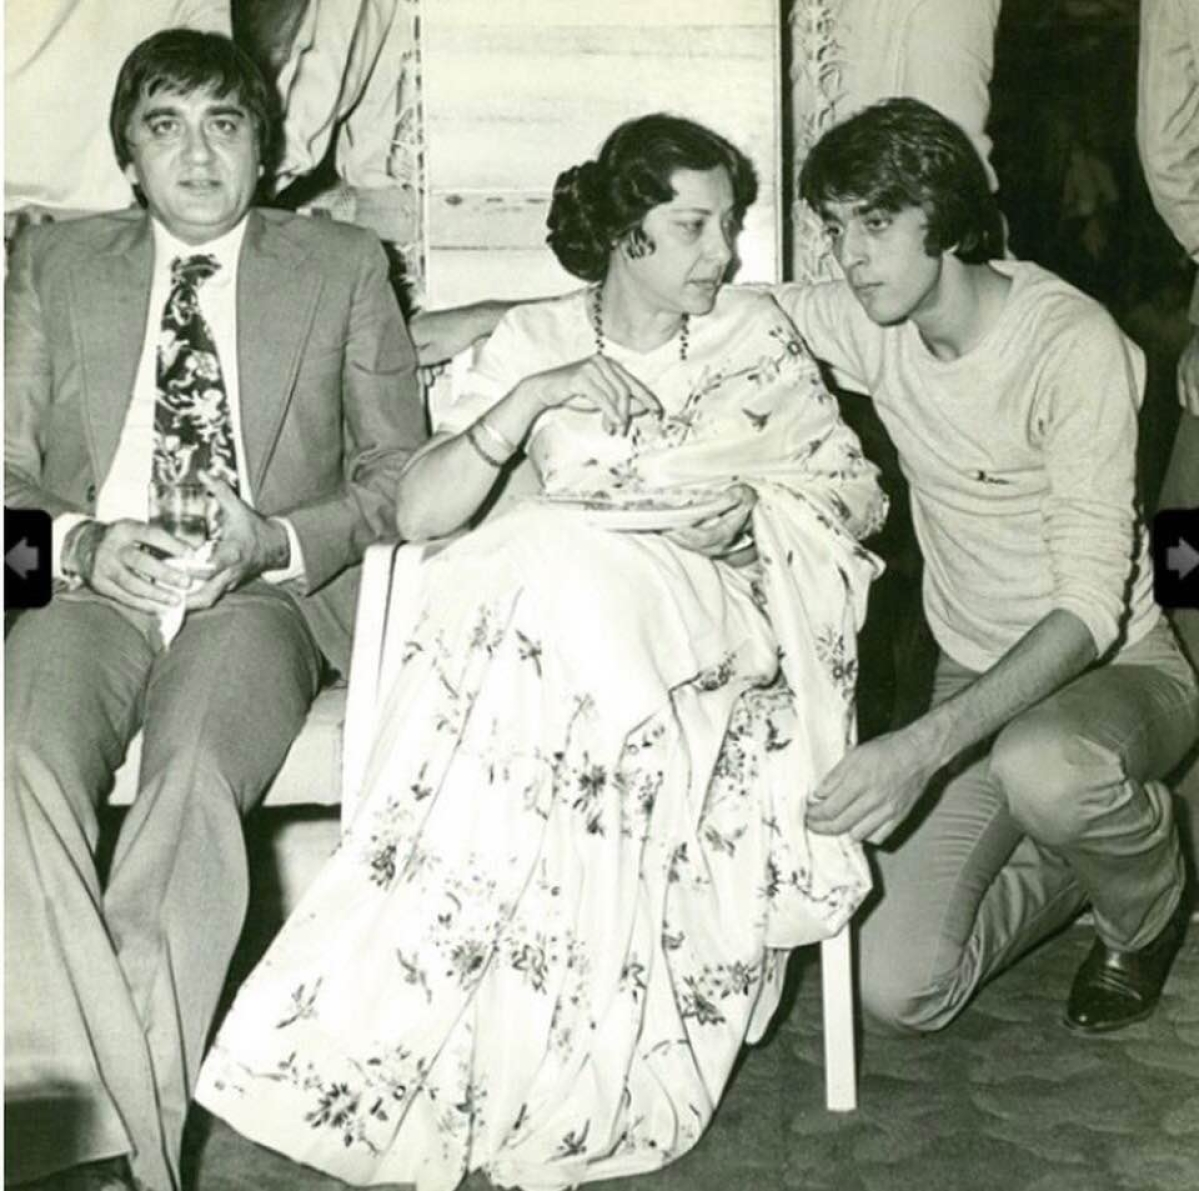 Sunil, Nargis and Sanjay at an event.